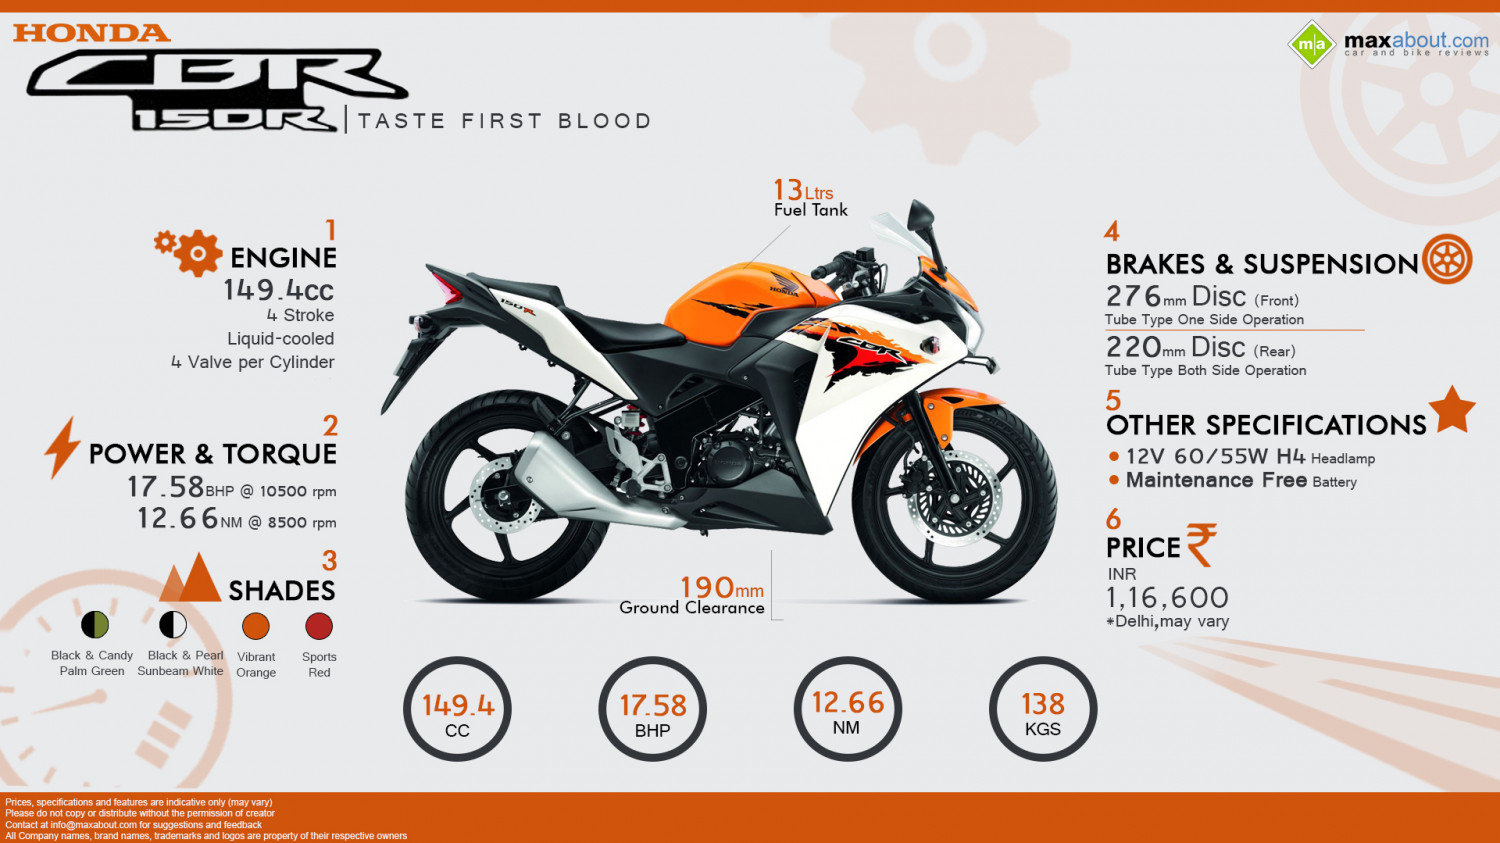 Honda CBR150R - Taste First Blood Infographic